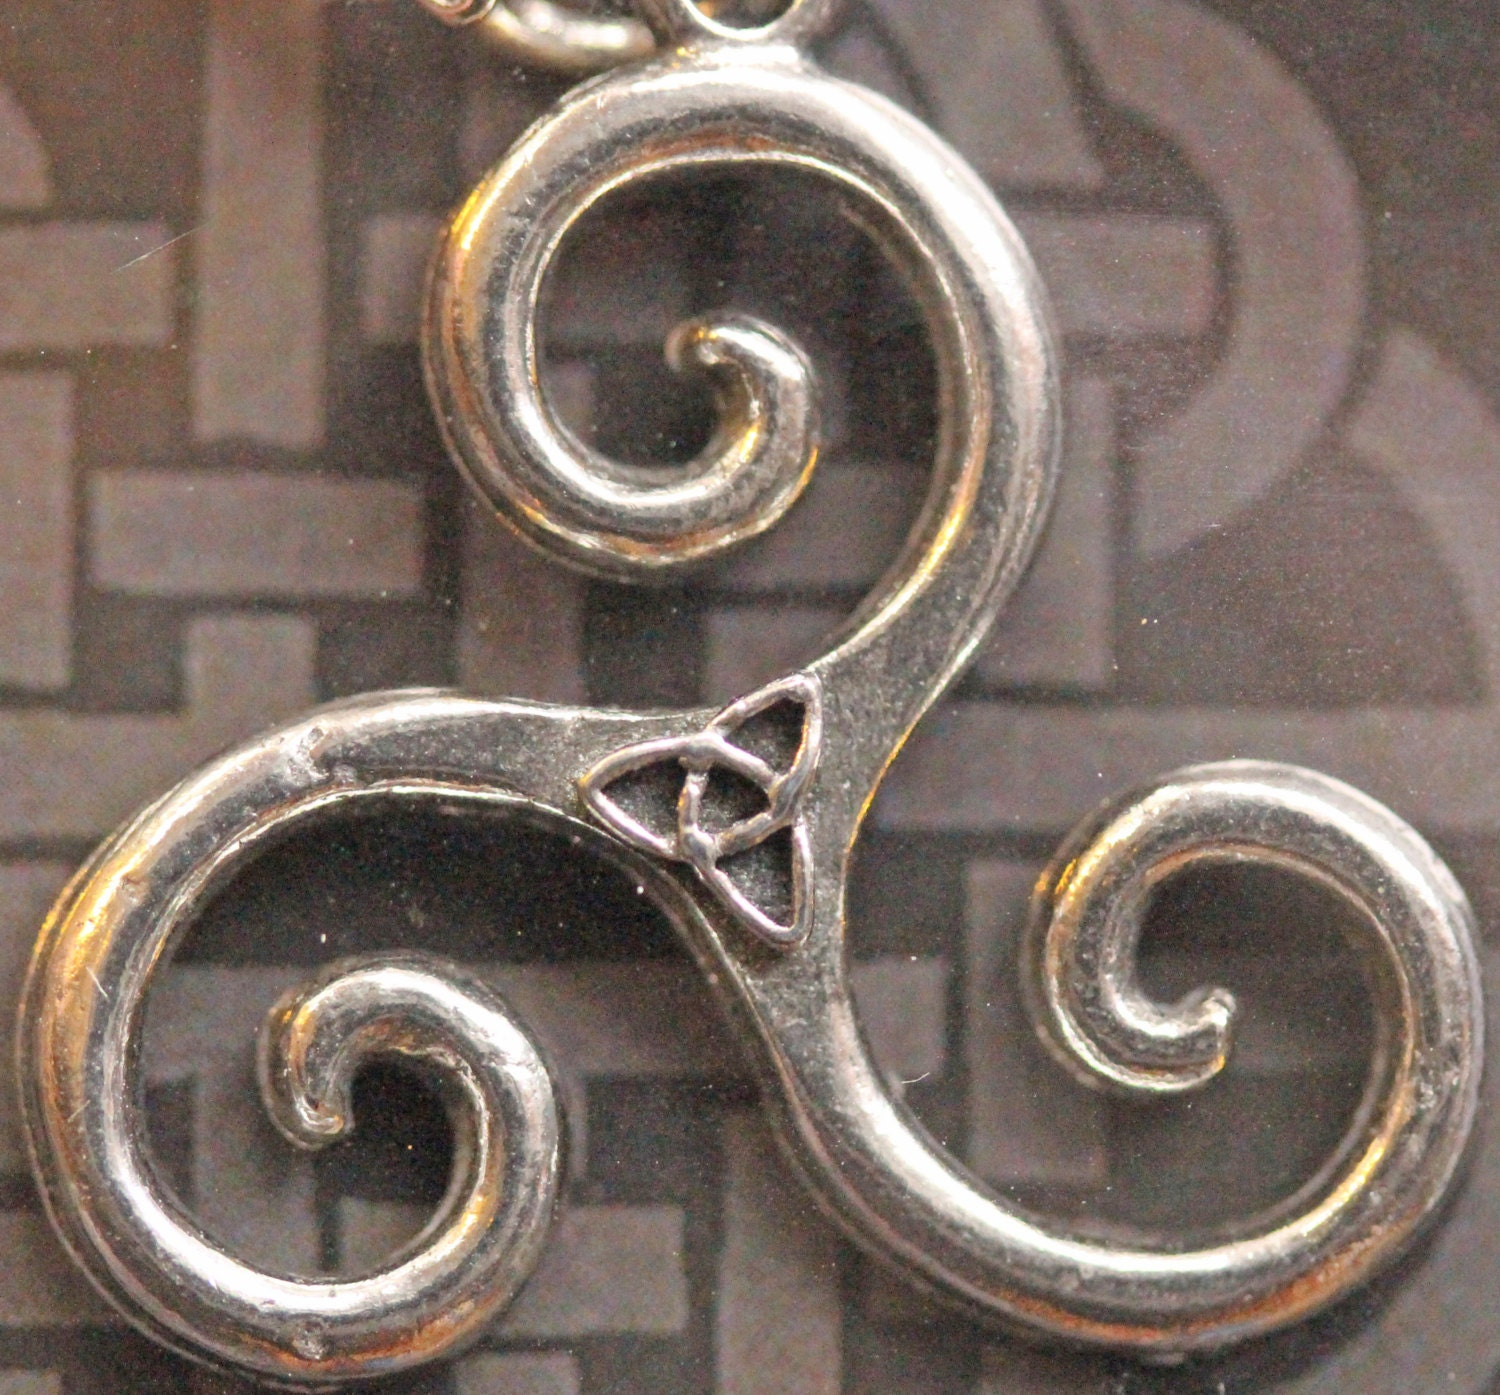 triskele hand necklace pendant celtic irish carved knot rosewood product shamrock